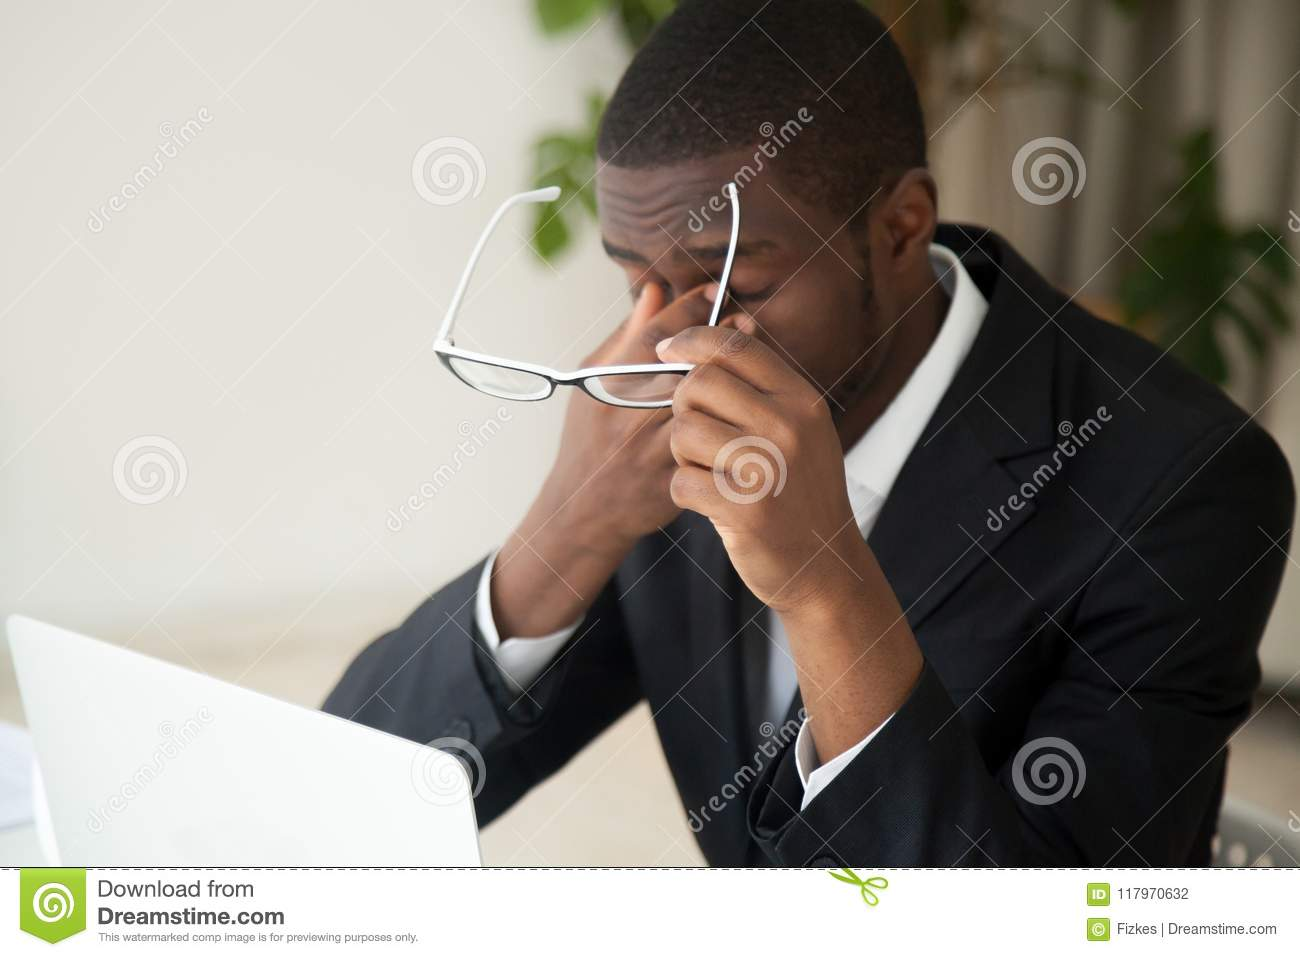 Download Tired African American Exhausted From Working Long Hours Stock Photo - Image of massaging, overwork: 117970632